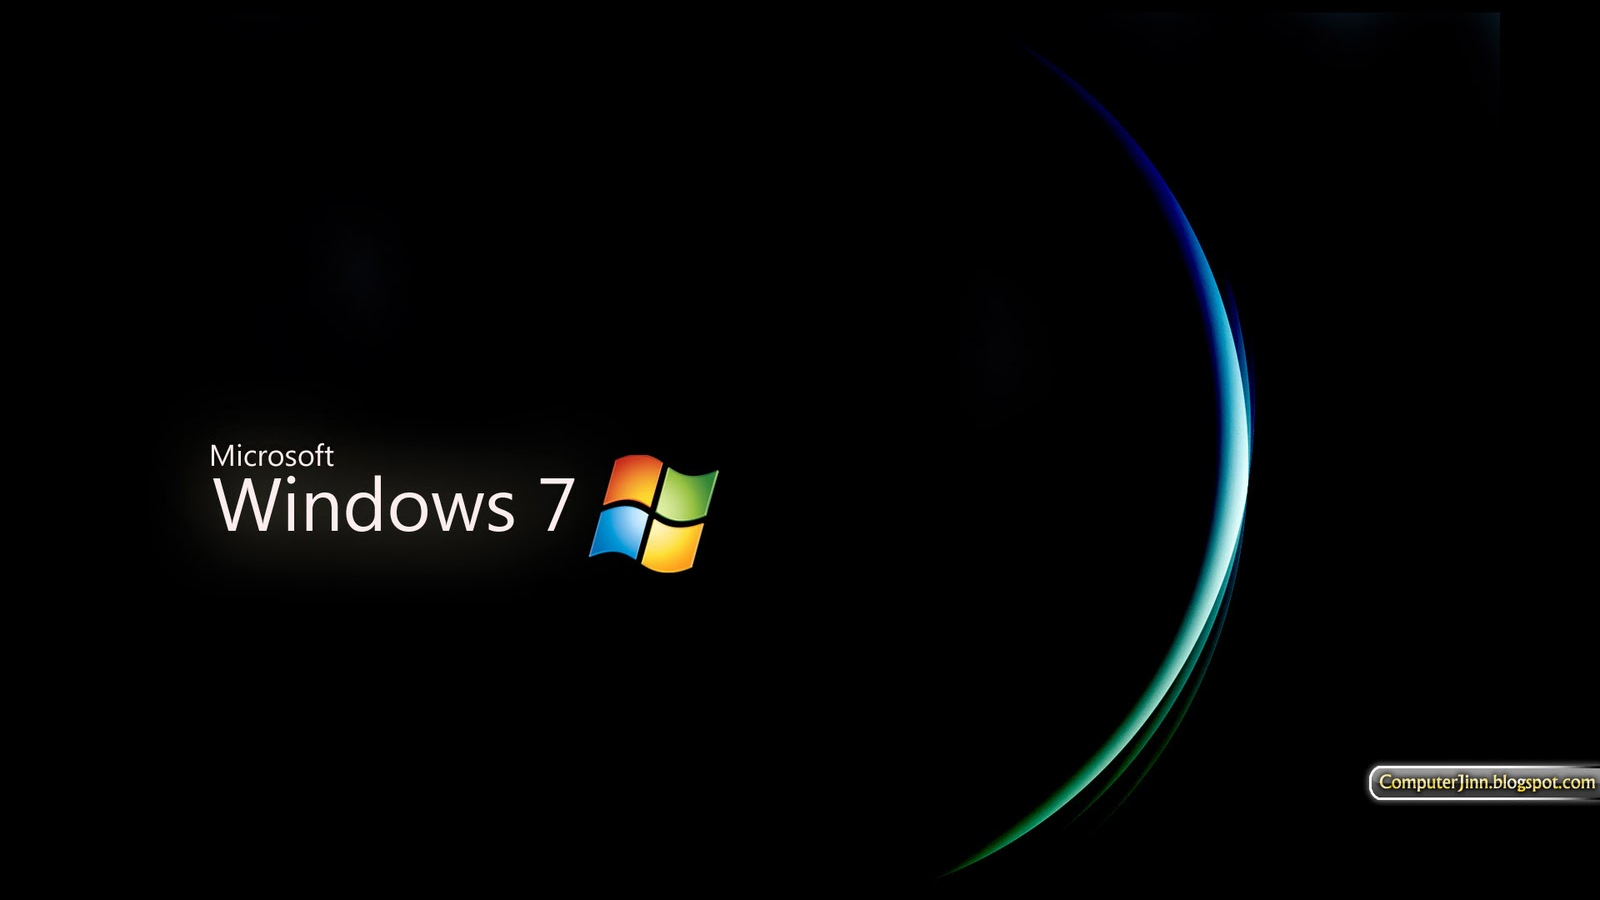 Free Download Windows 7 Black And Dark Hd Wallpapers Wallpapers